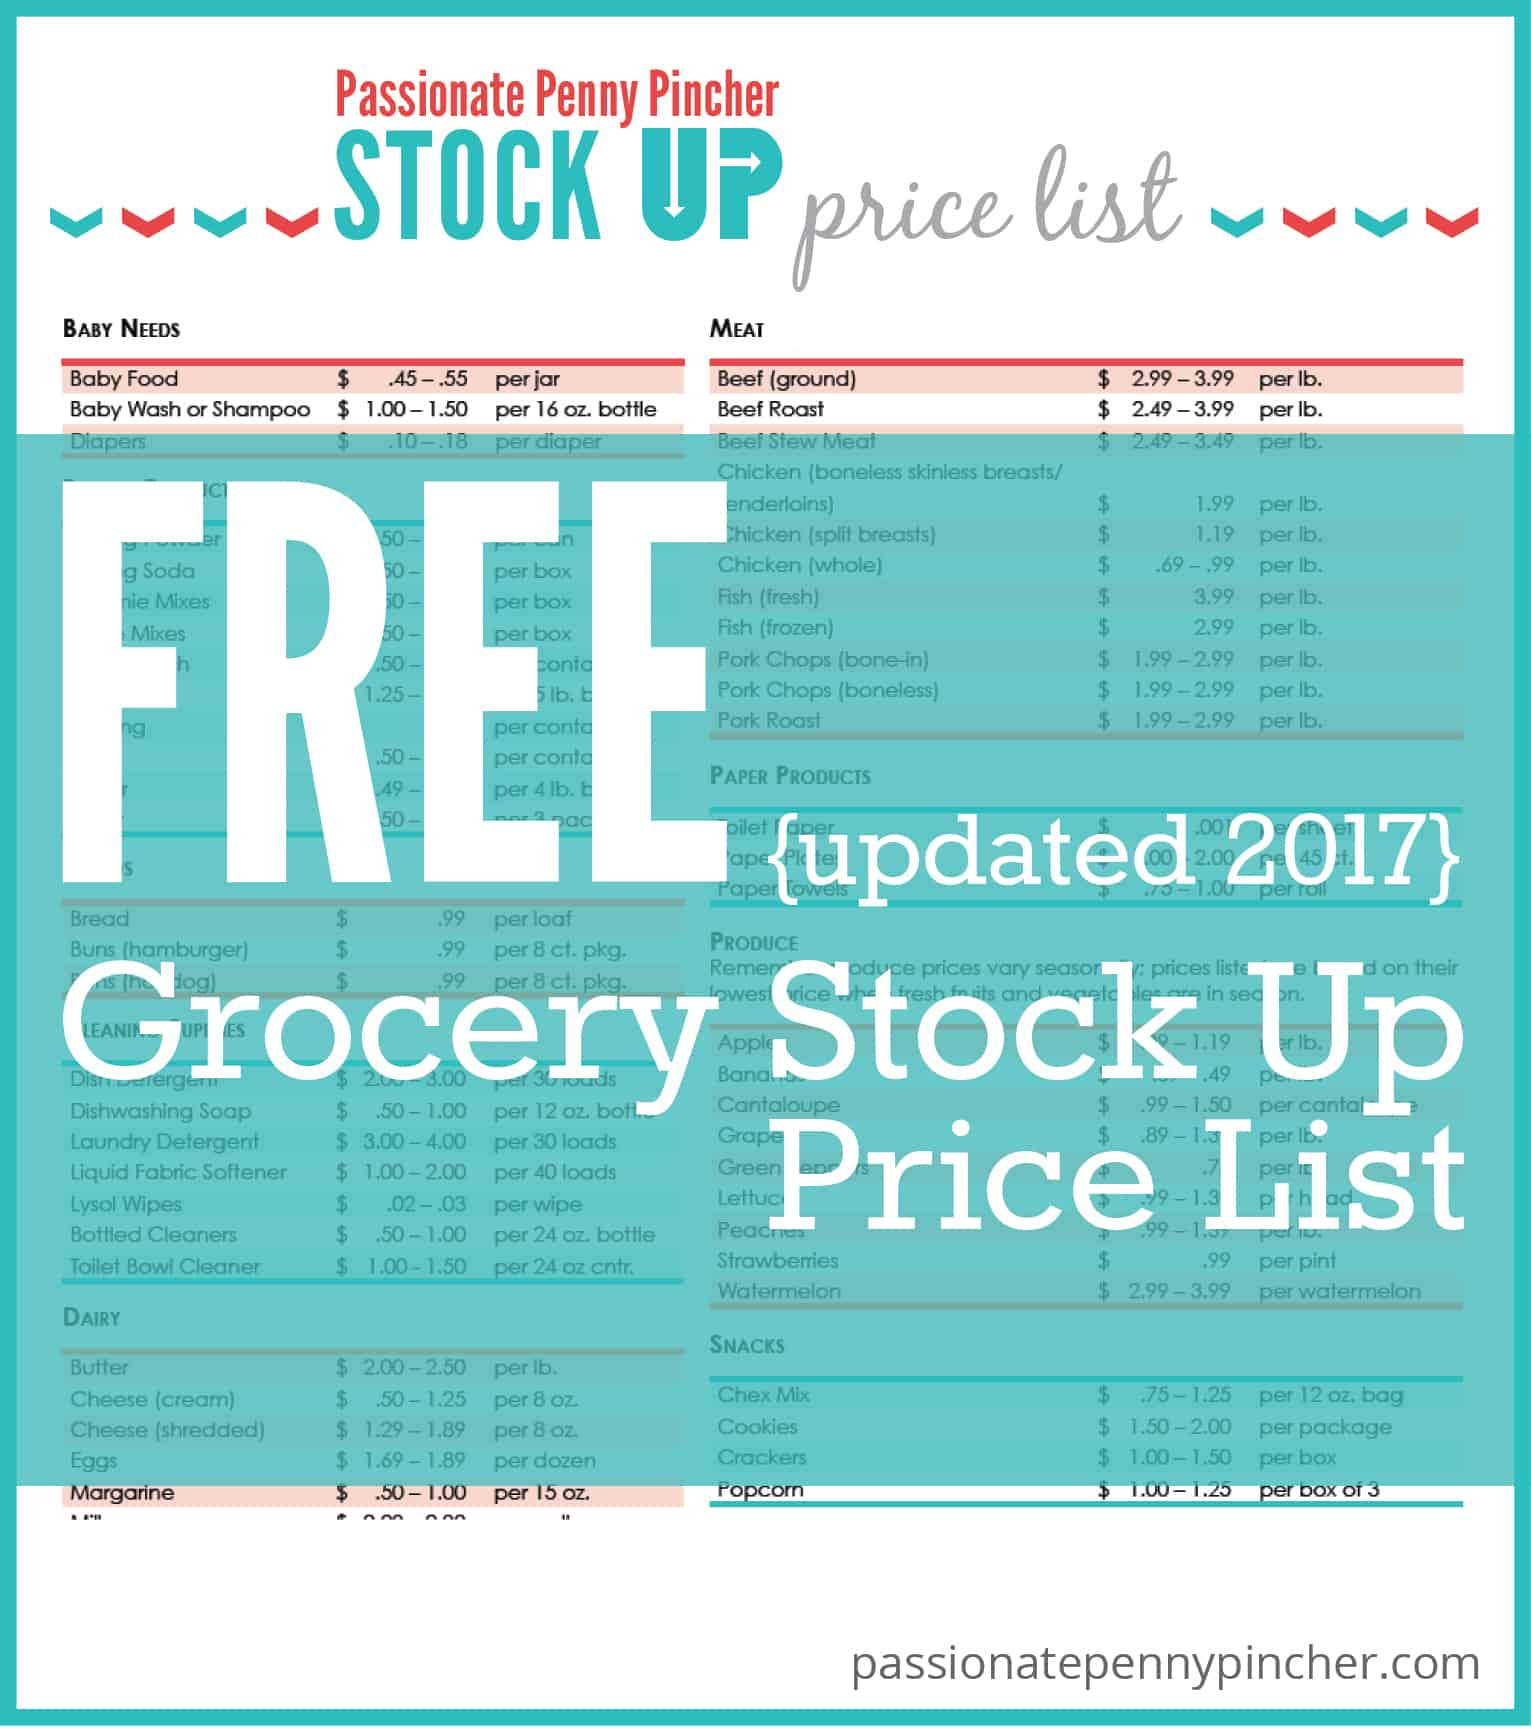 Free Stock Up Price List Updated